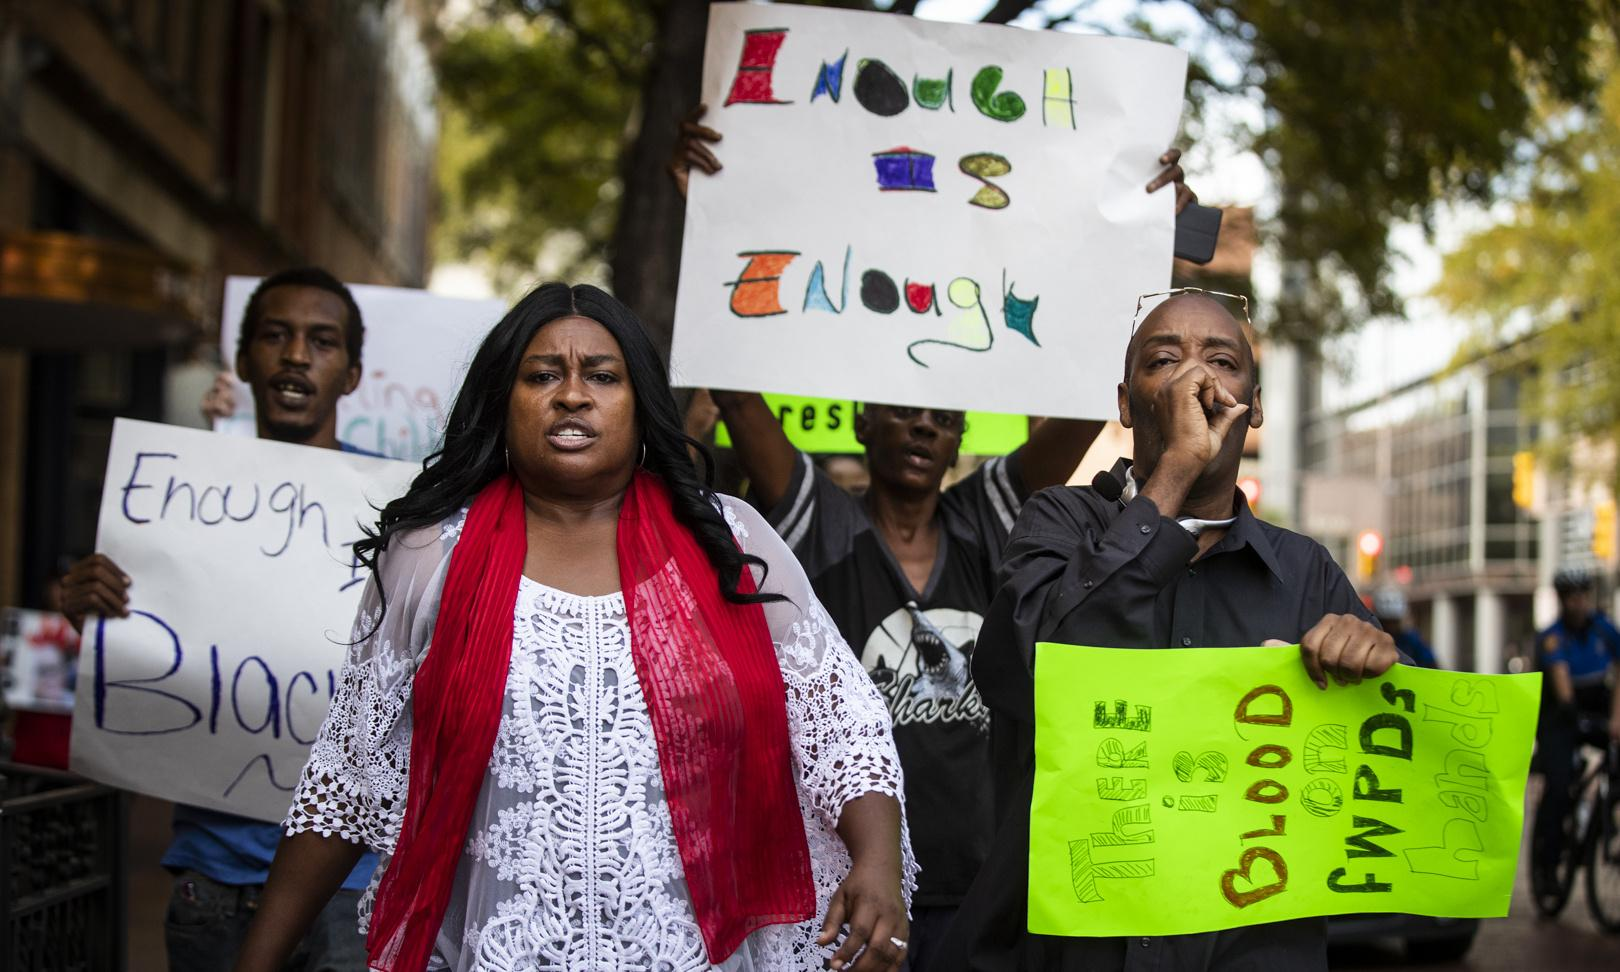 'We will fight back': how the police killing of a black woman in Texas sparked fear and anger